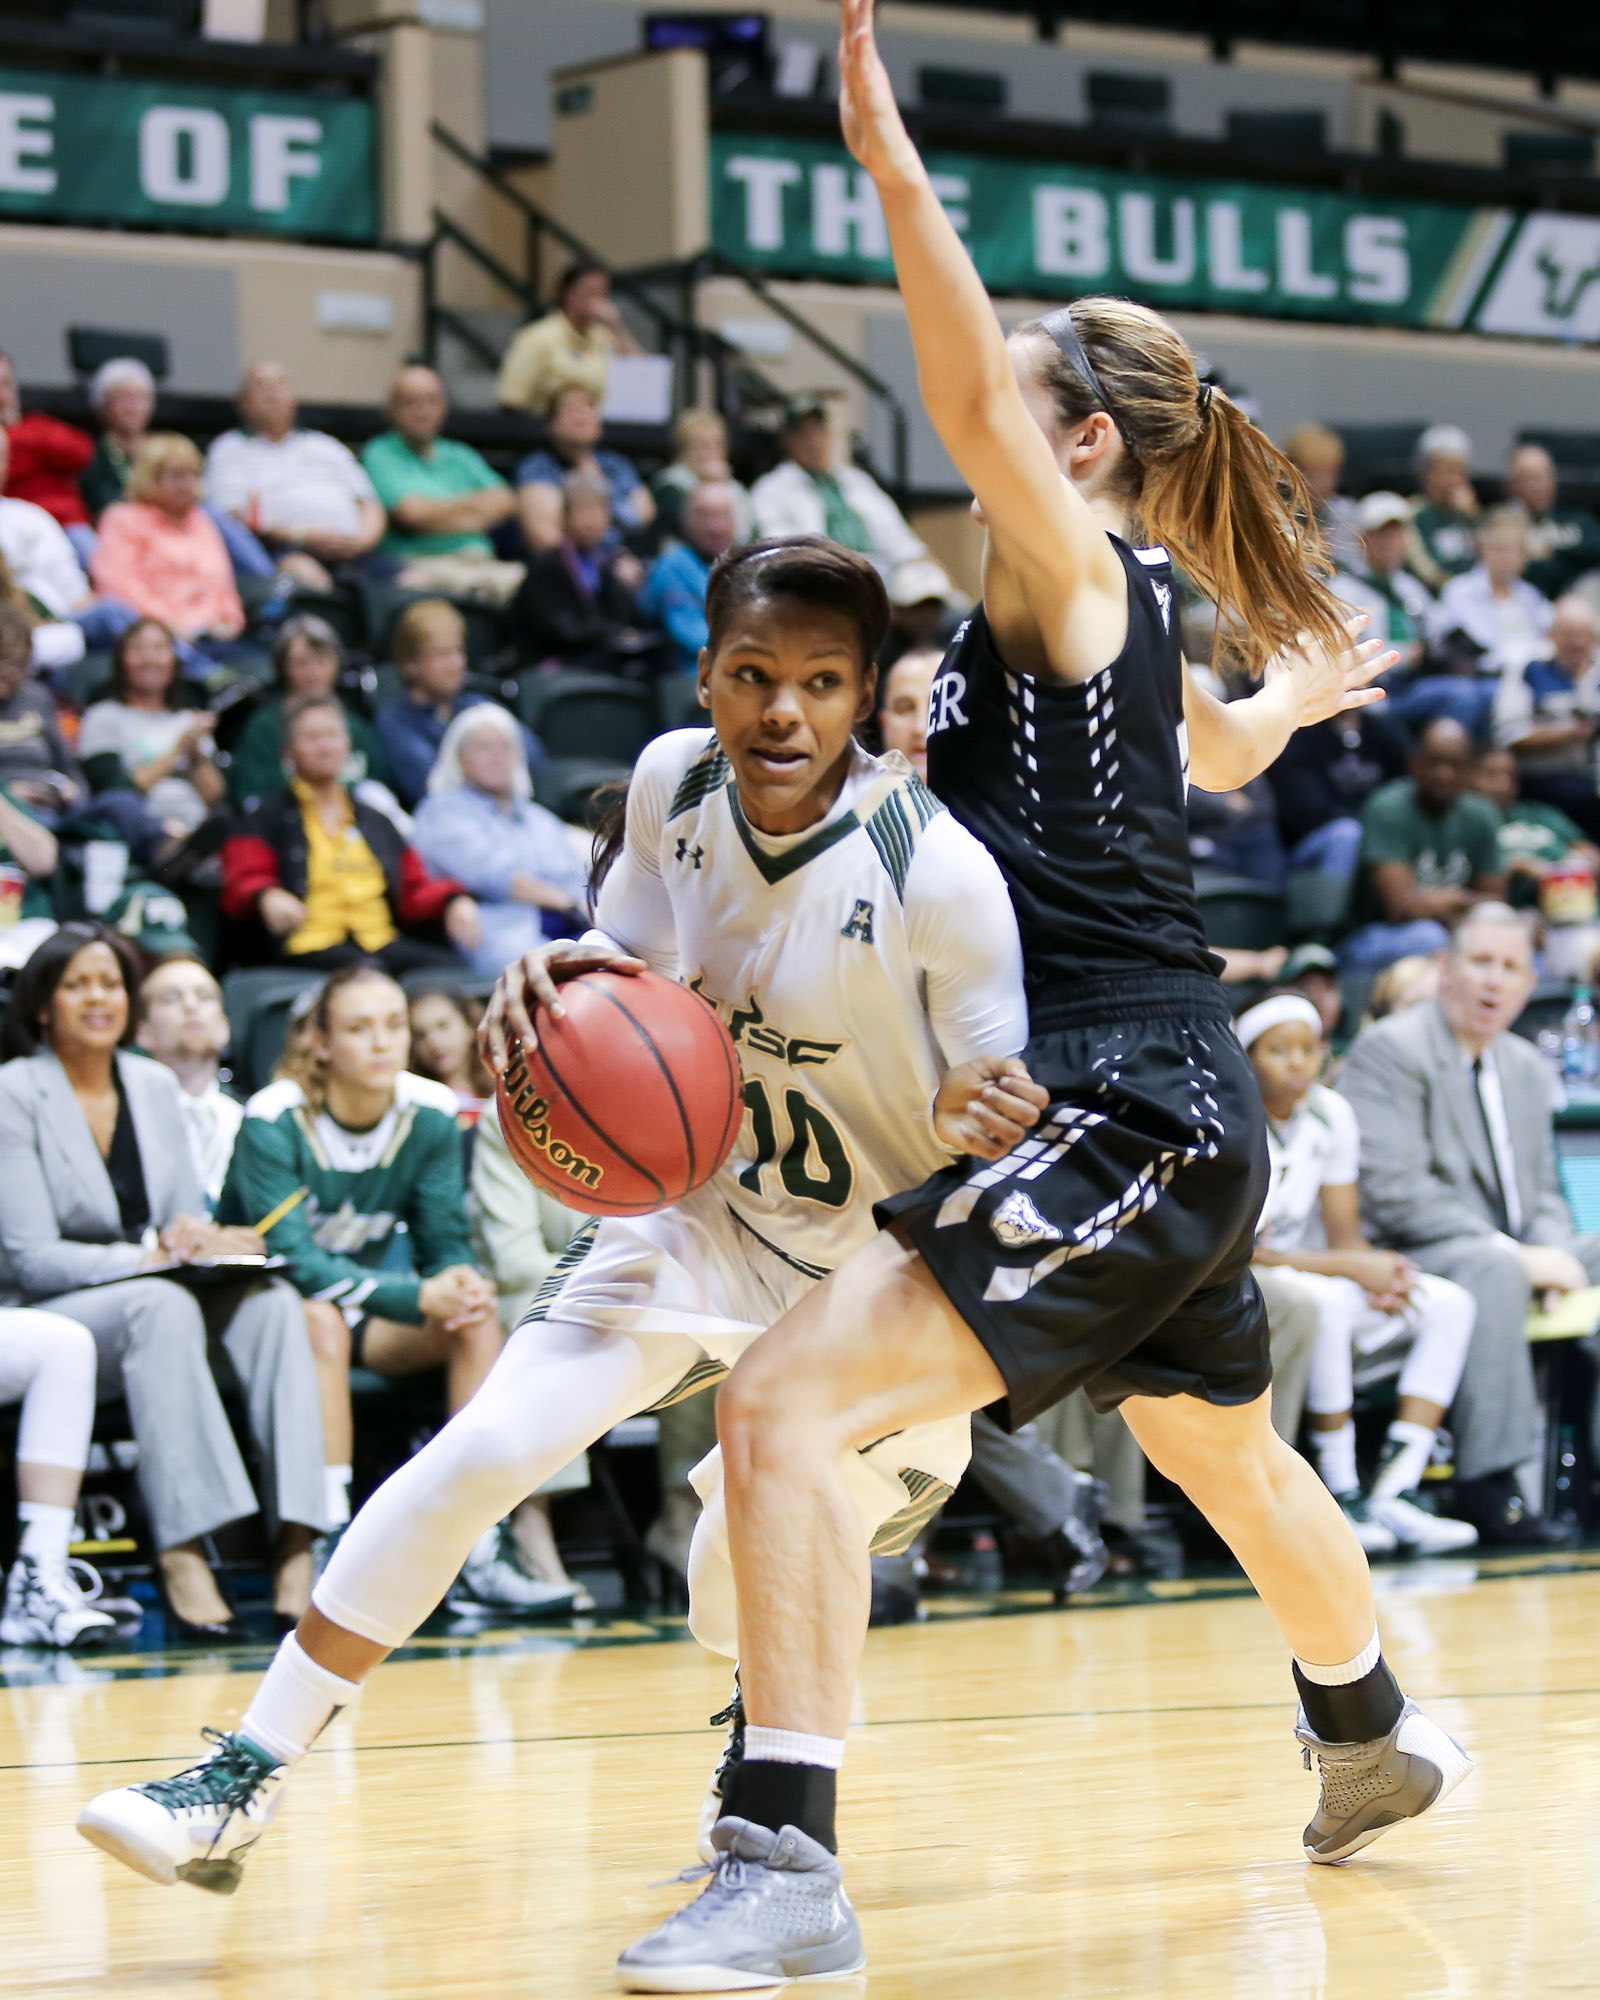 Williams drives to the basket in her 29 point, 10 rebound performance/ANDREW J. KRAMER